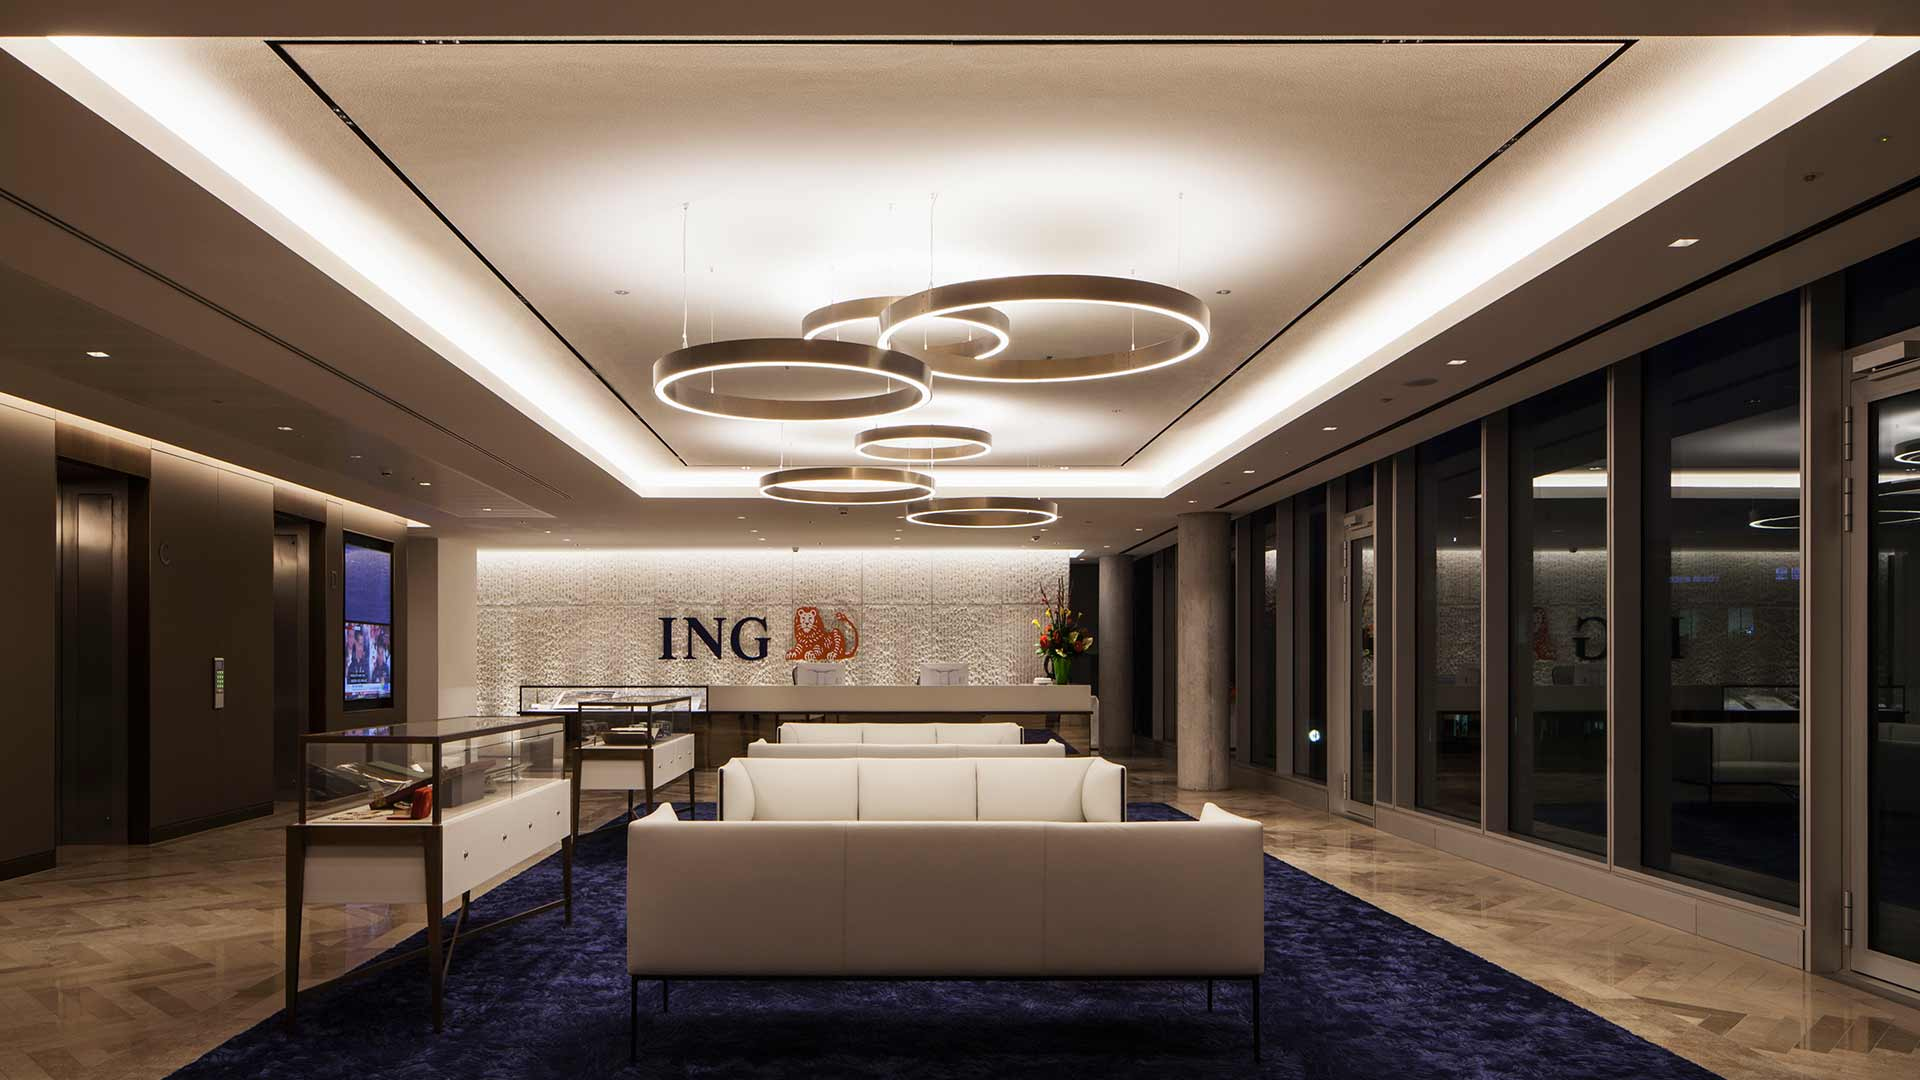 ing bank uk headquarters nulty lighting design consultants